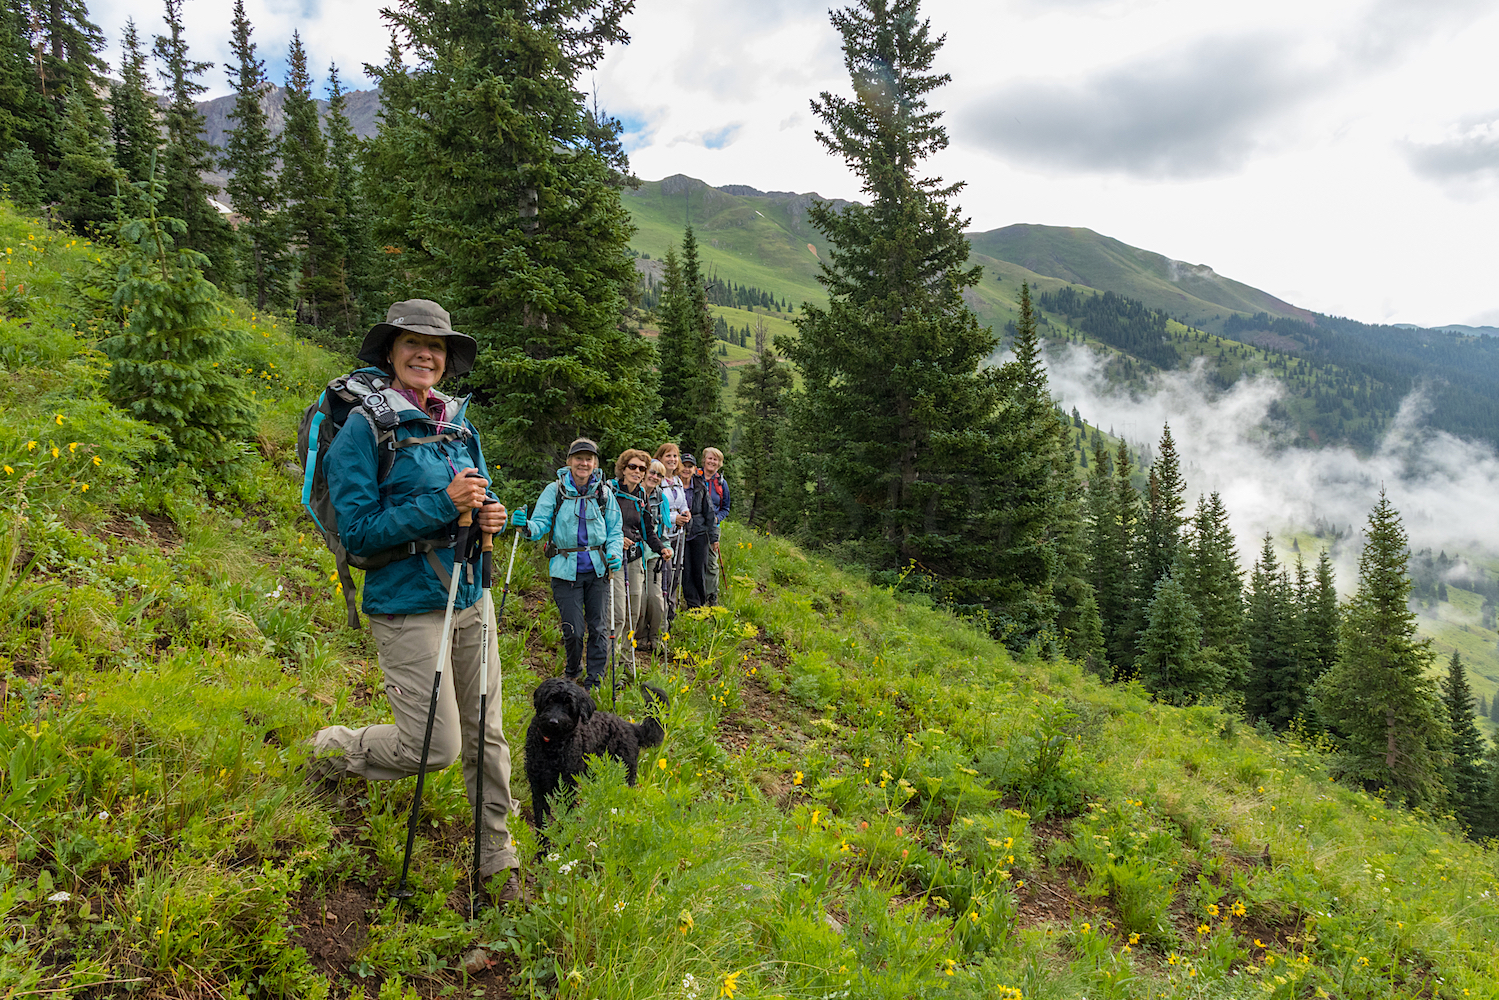 The Moxie's hit the trail for Paradise Basin